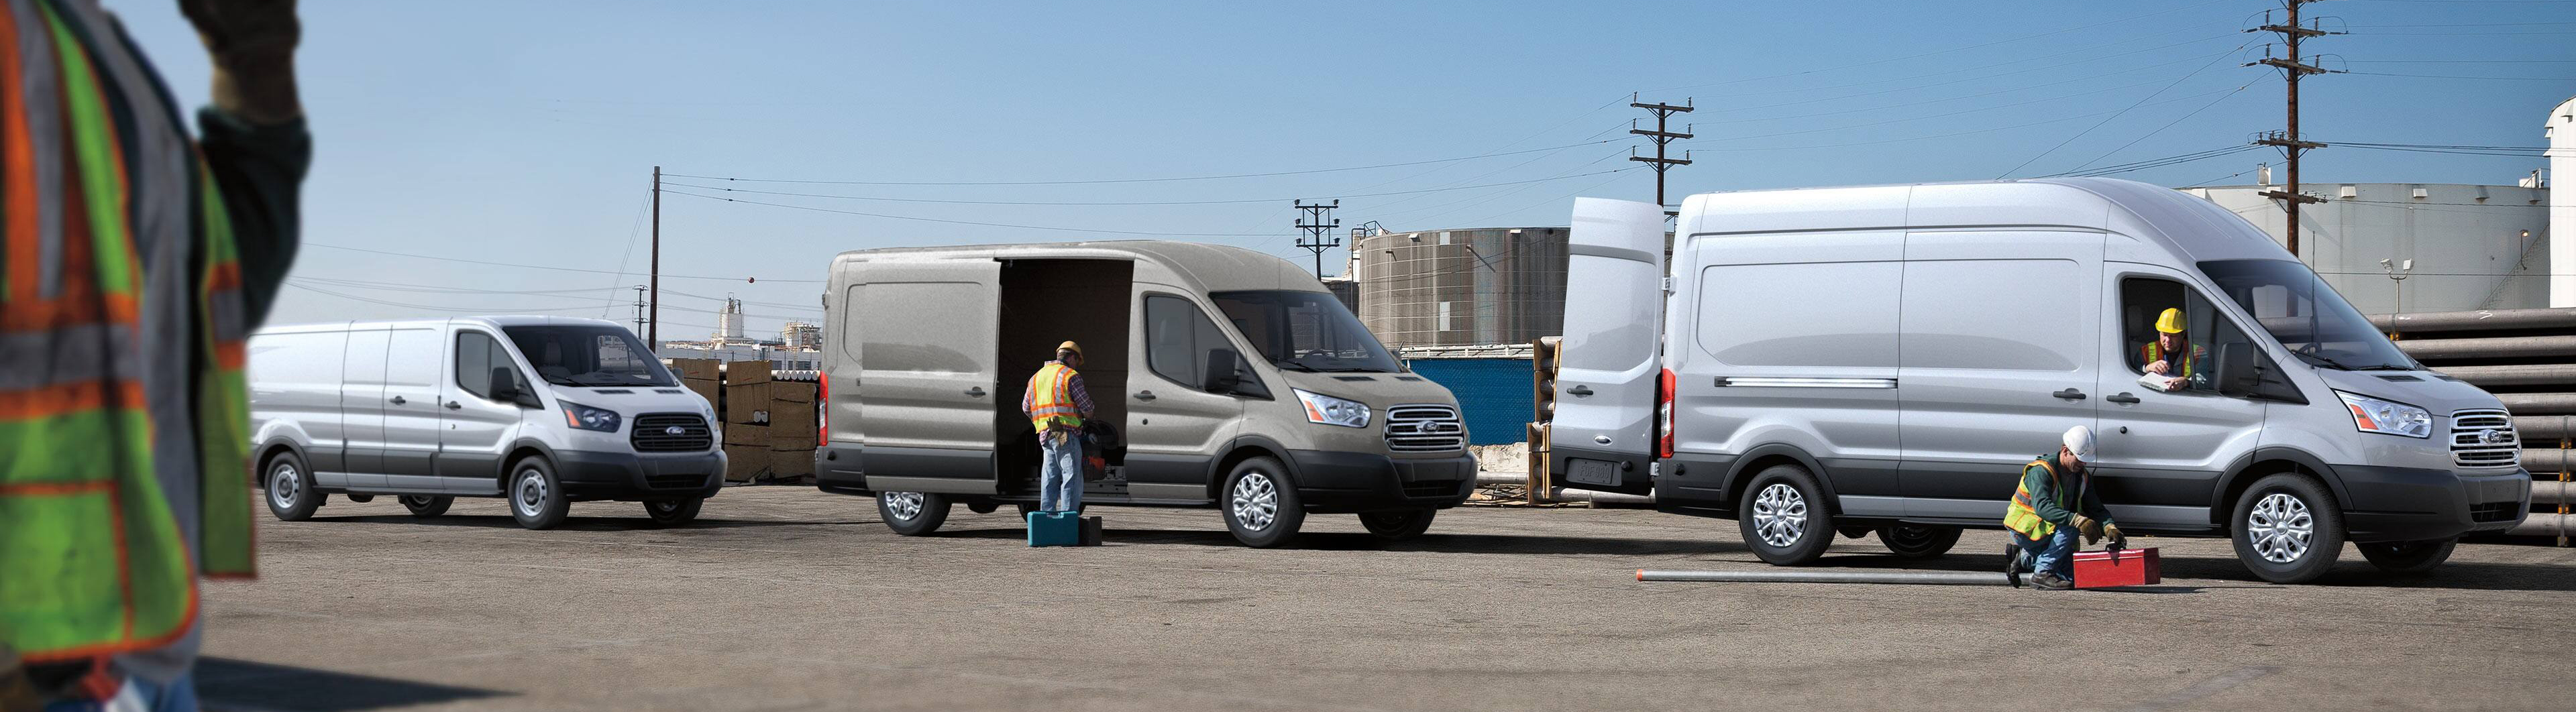 construction works loading and unloading several 2019 ford transit vans